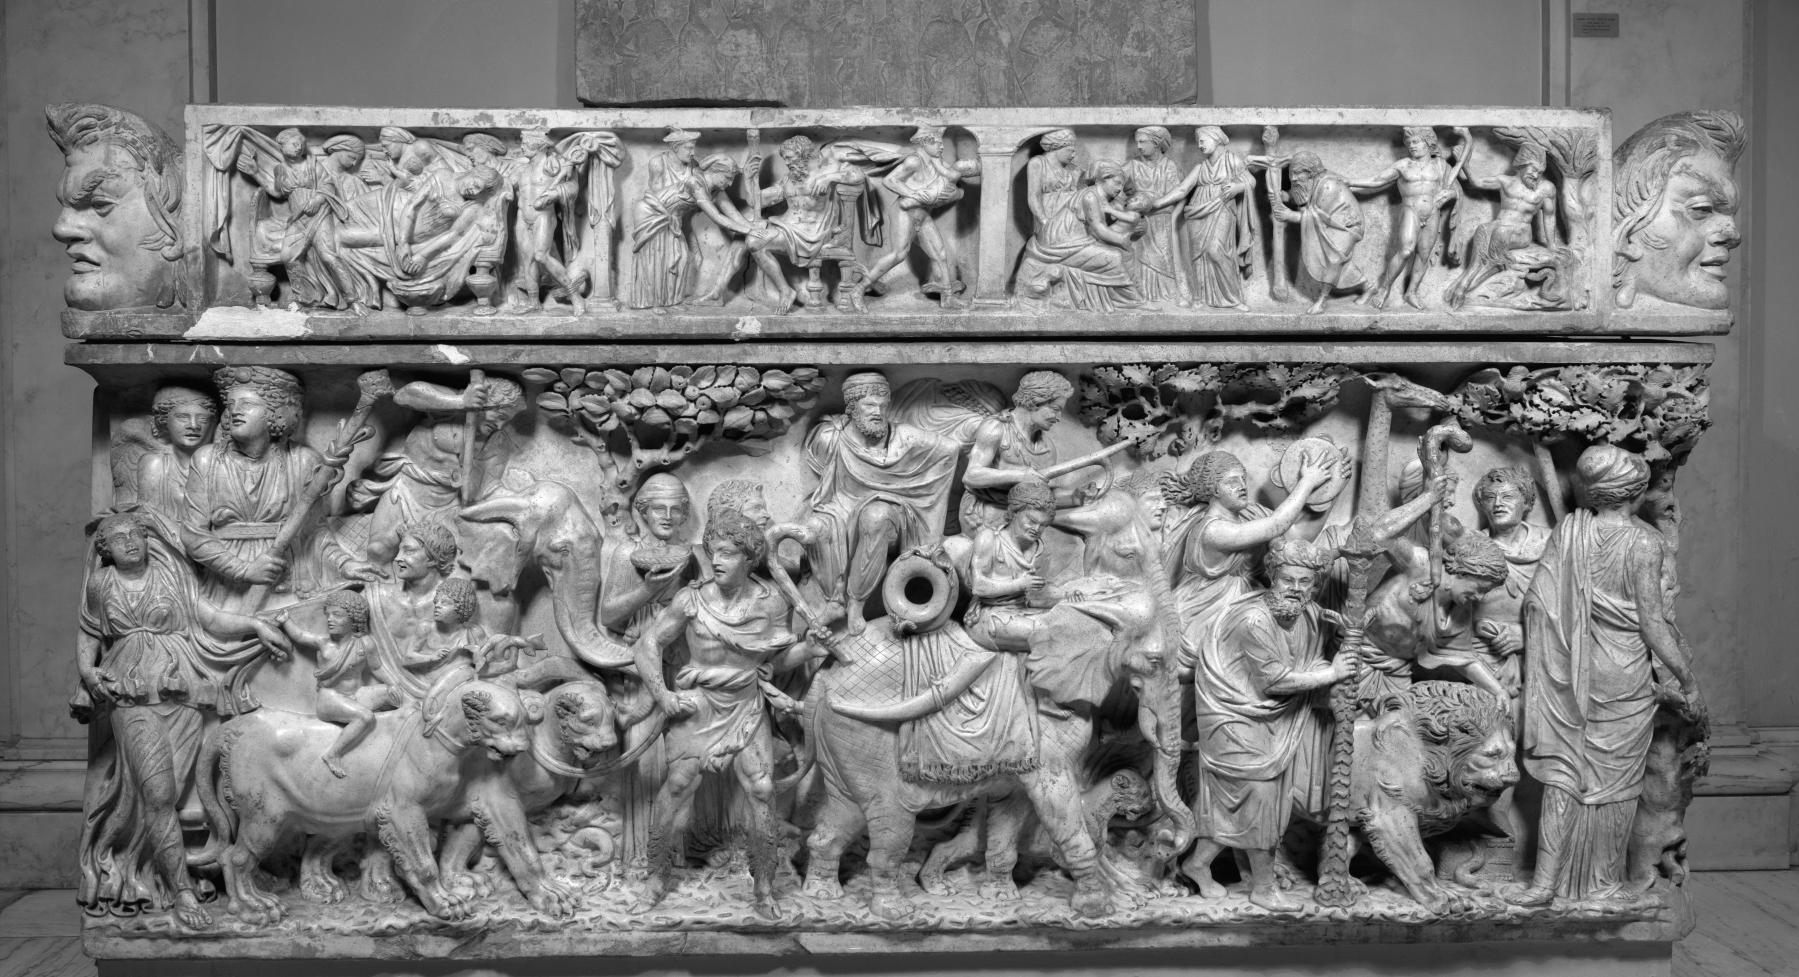 The triumph of Dionysus, depicted on a 2nd-century Roman sarcophagus. Dionysus rides in a chariot drawn by panthers; his procession includes elephants and other exotic animals. Credit: Wikimedia Commons